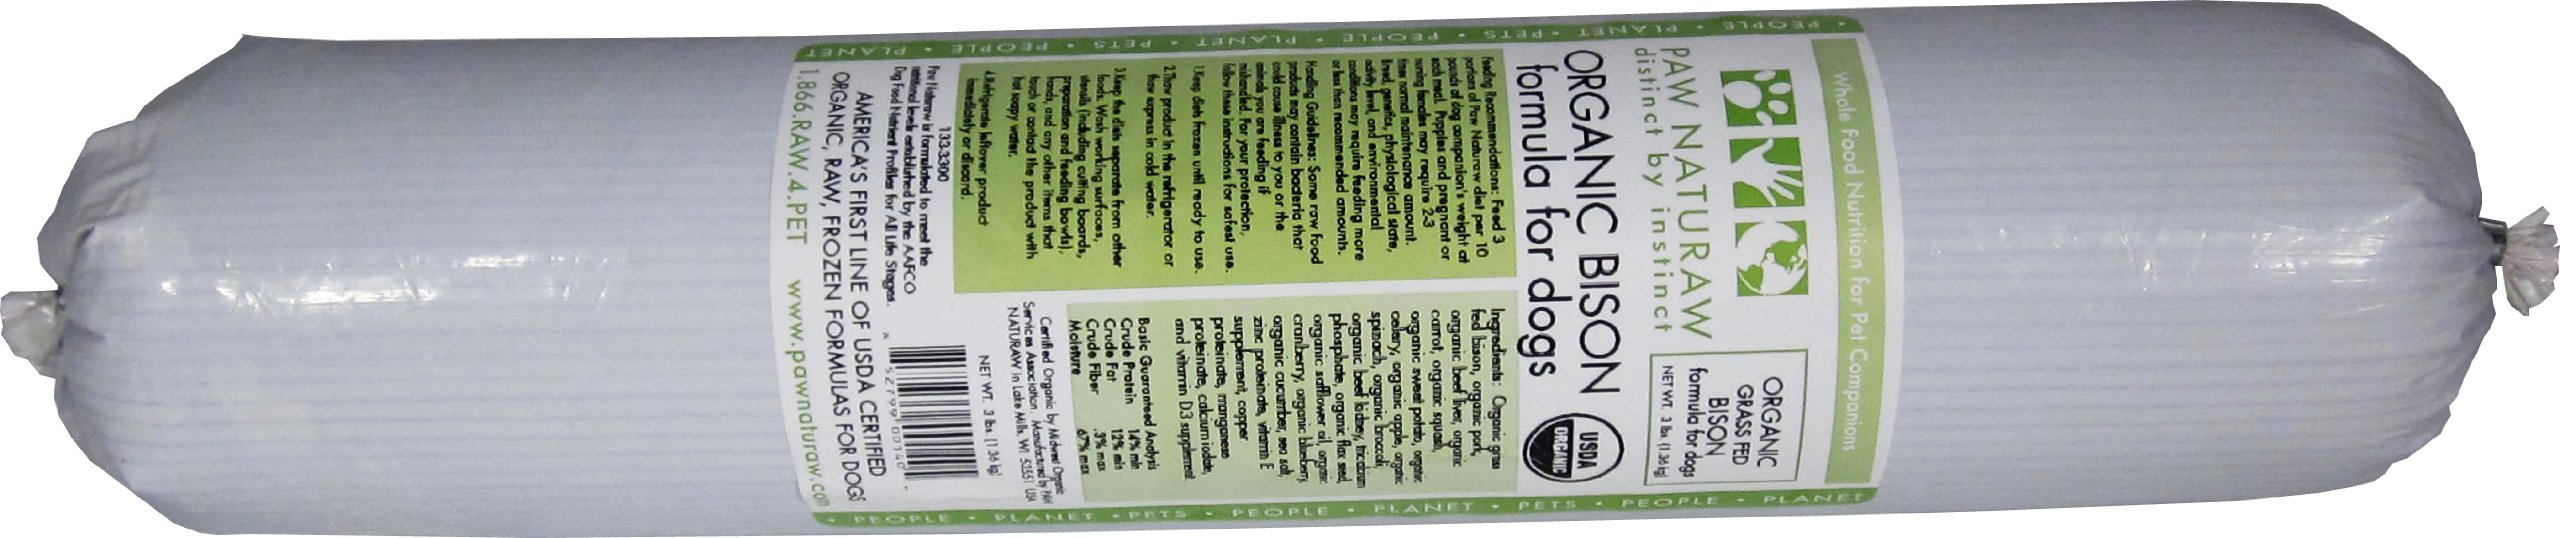 Paw Naturaw Diet Grass Fed Organic Bison Rolls (Pack of 14)